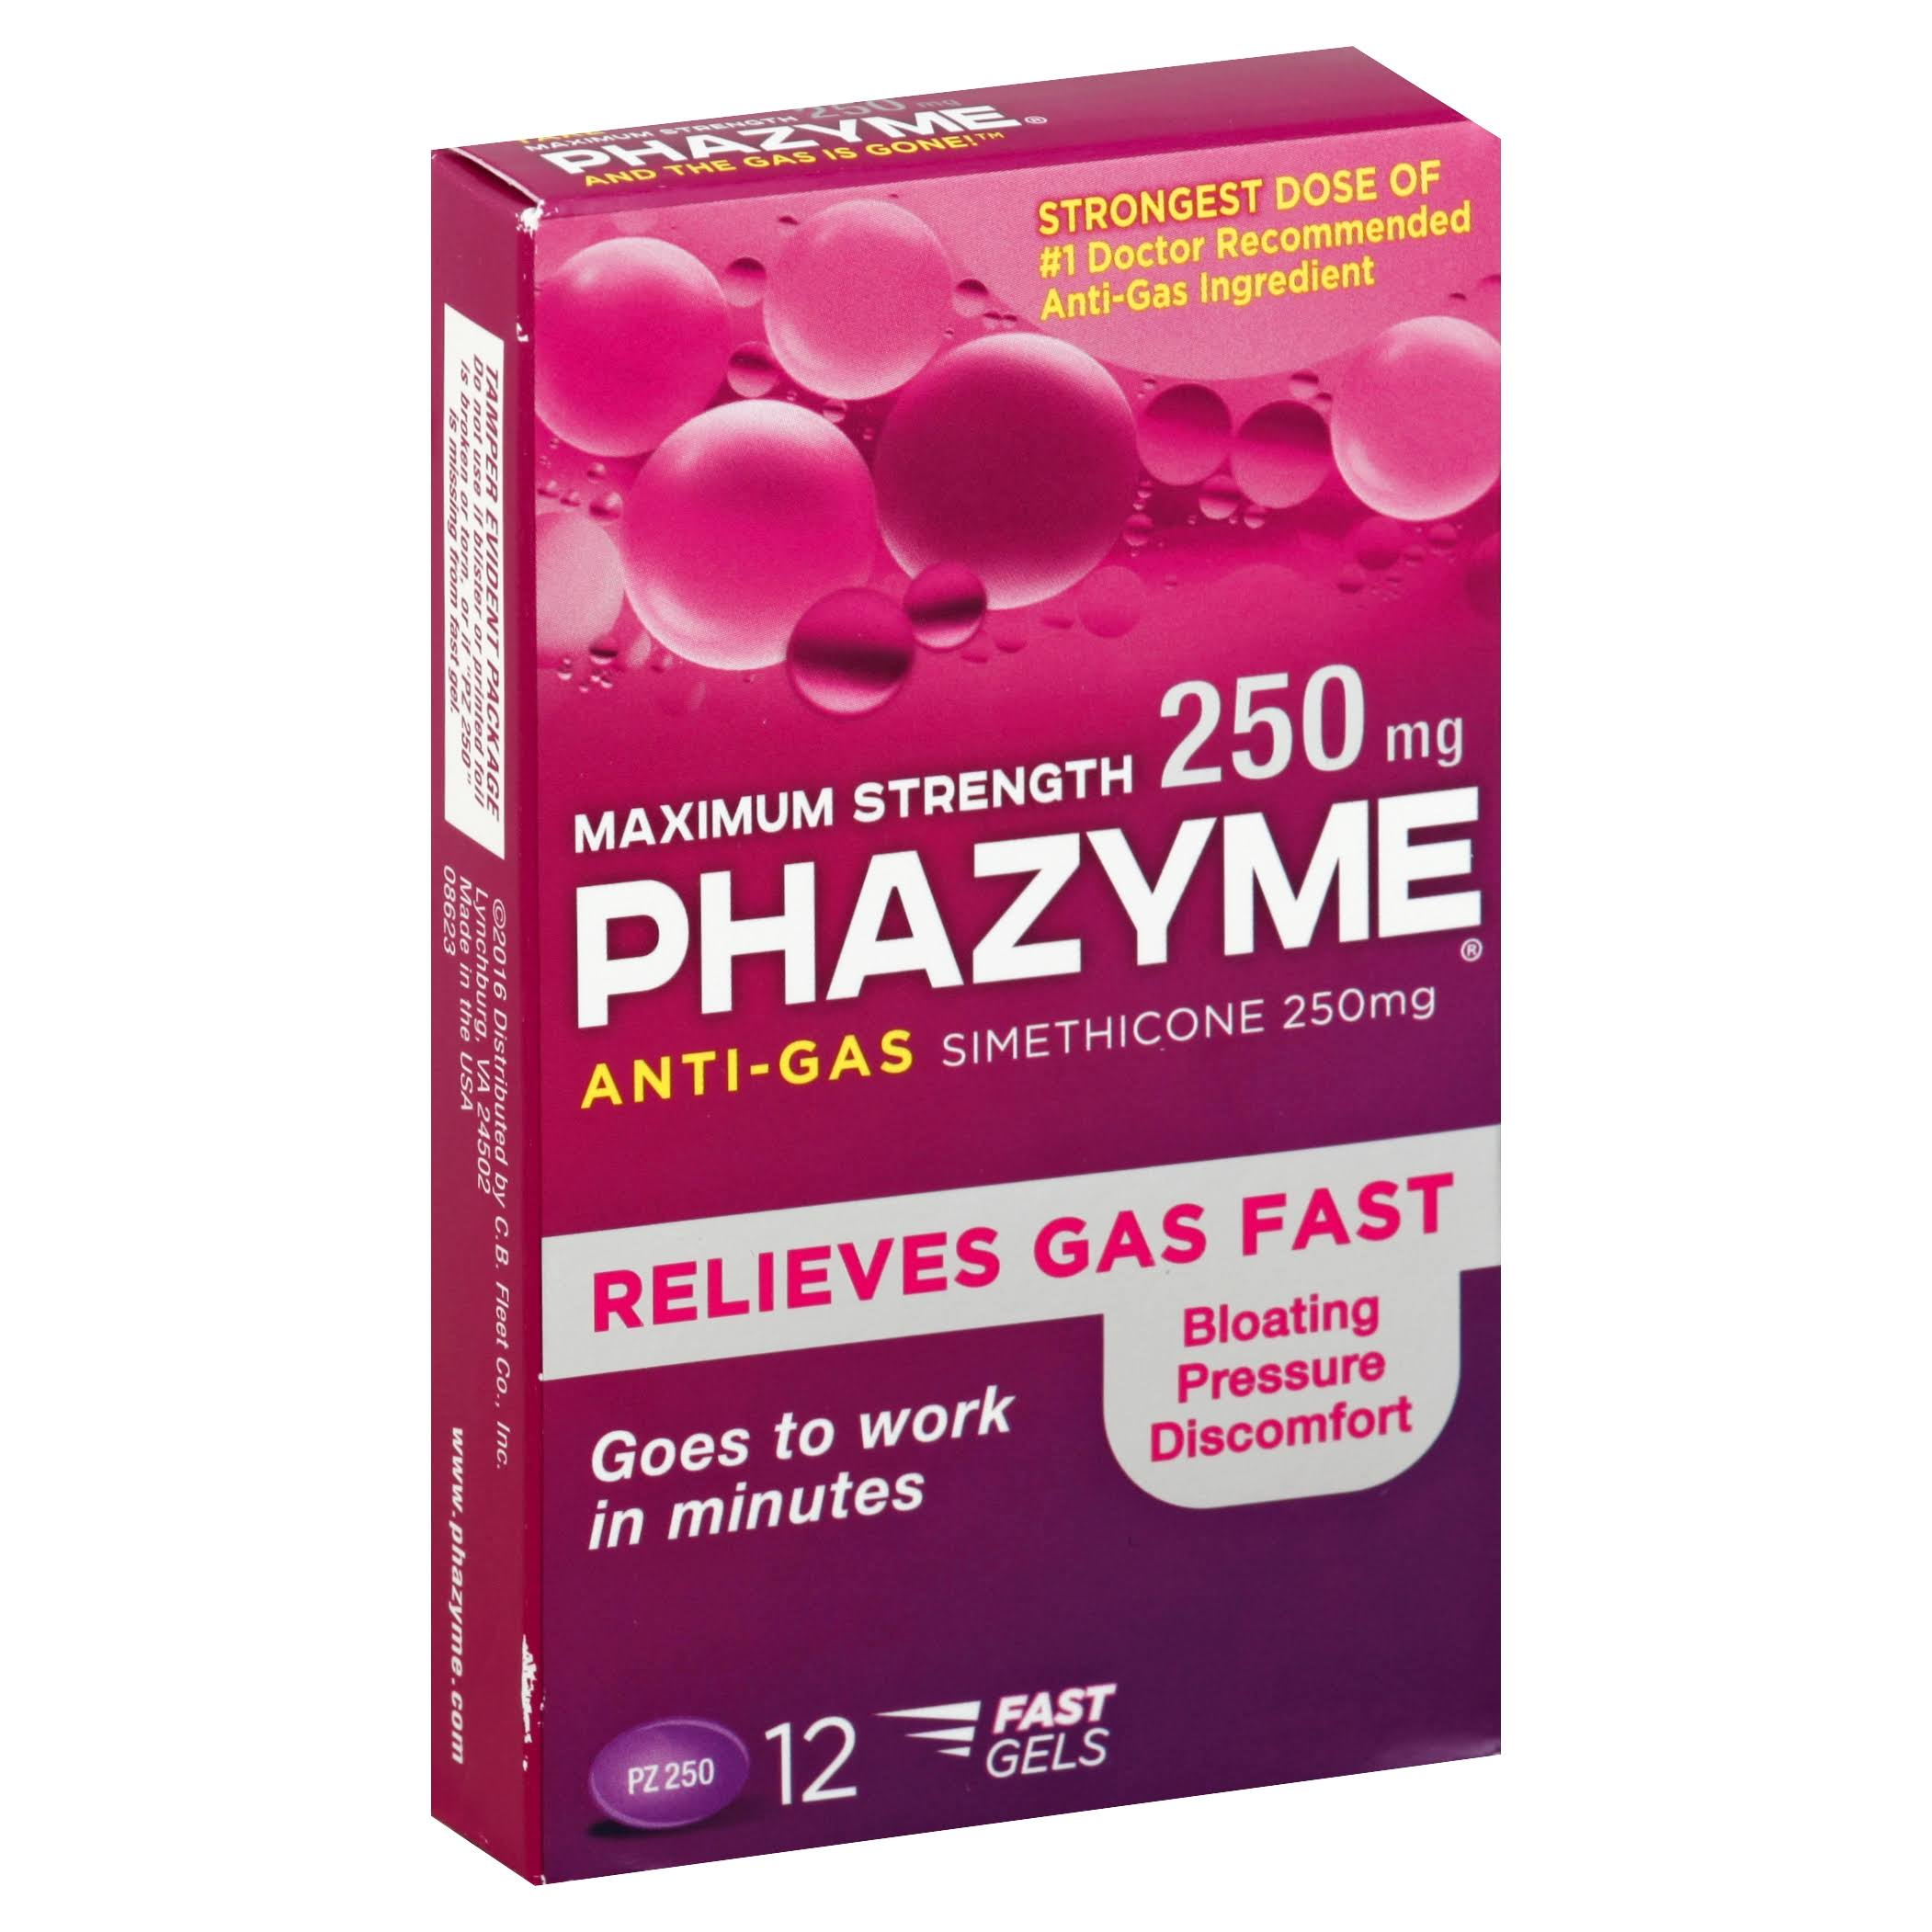 Phazyme Anti-Gas Simethicone Soft Gels - 250mg, 12 Soft Gels